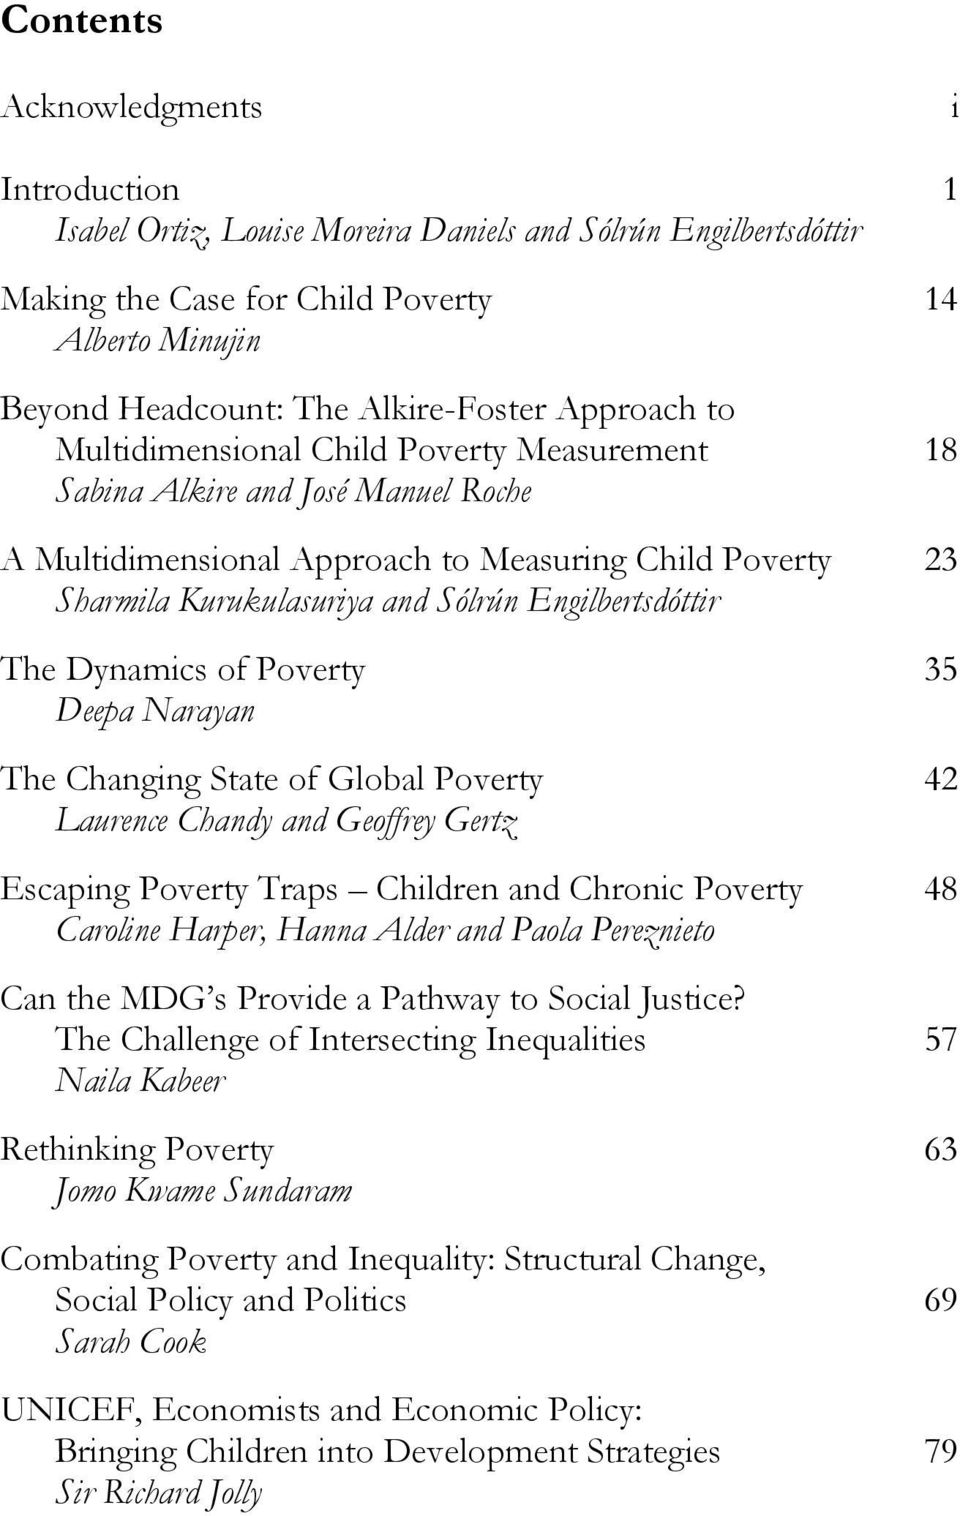 Engilbertsdóttir The Dynamics of Poverty 35 Deepa Narayan The Changing State of Global Poverty 42 Laurence Chandy and Geoffrey Gertz Escaping Poverty Traps Children and Chronic Poverty 48 Caroline